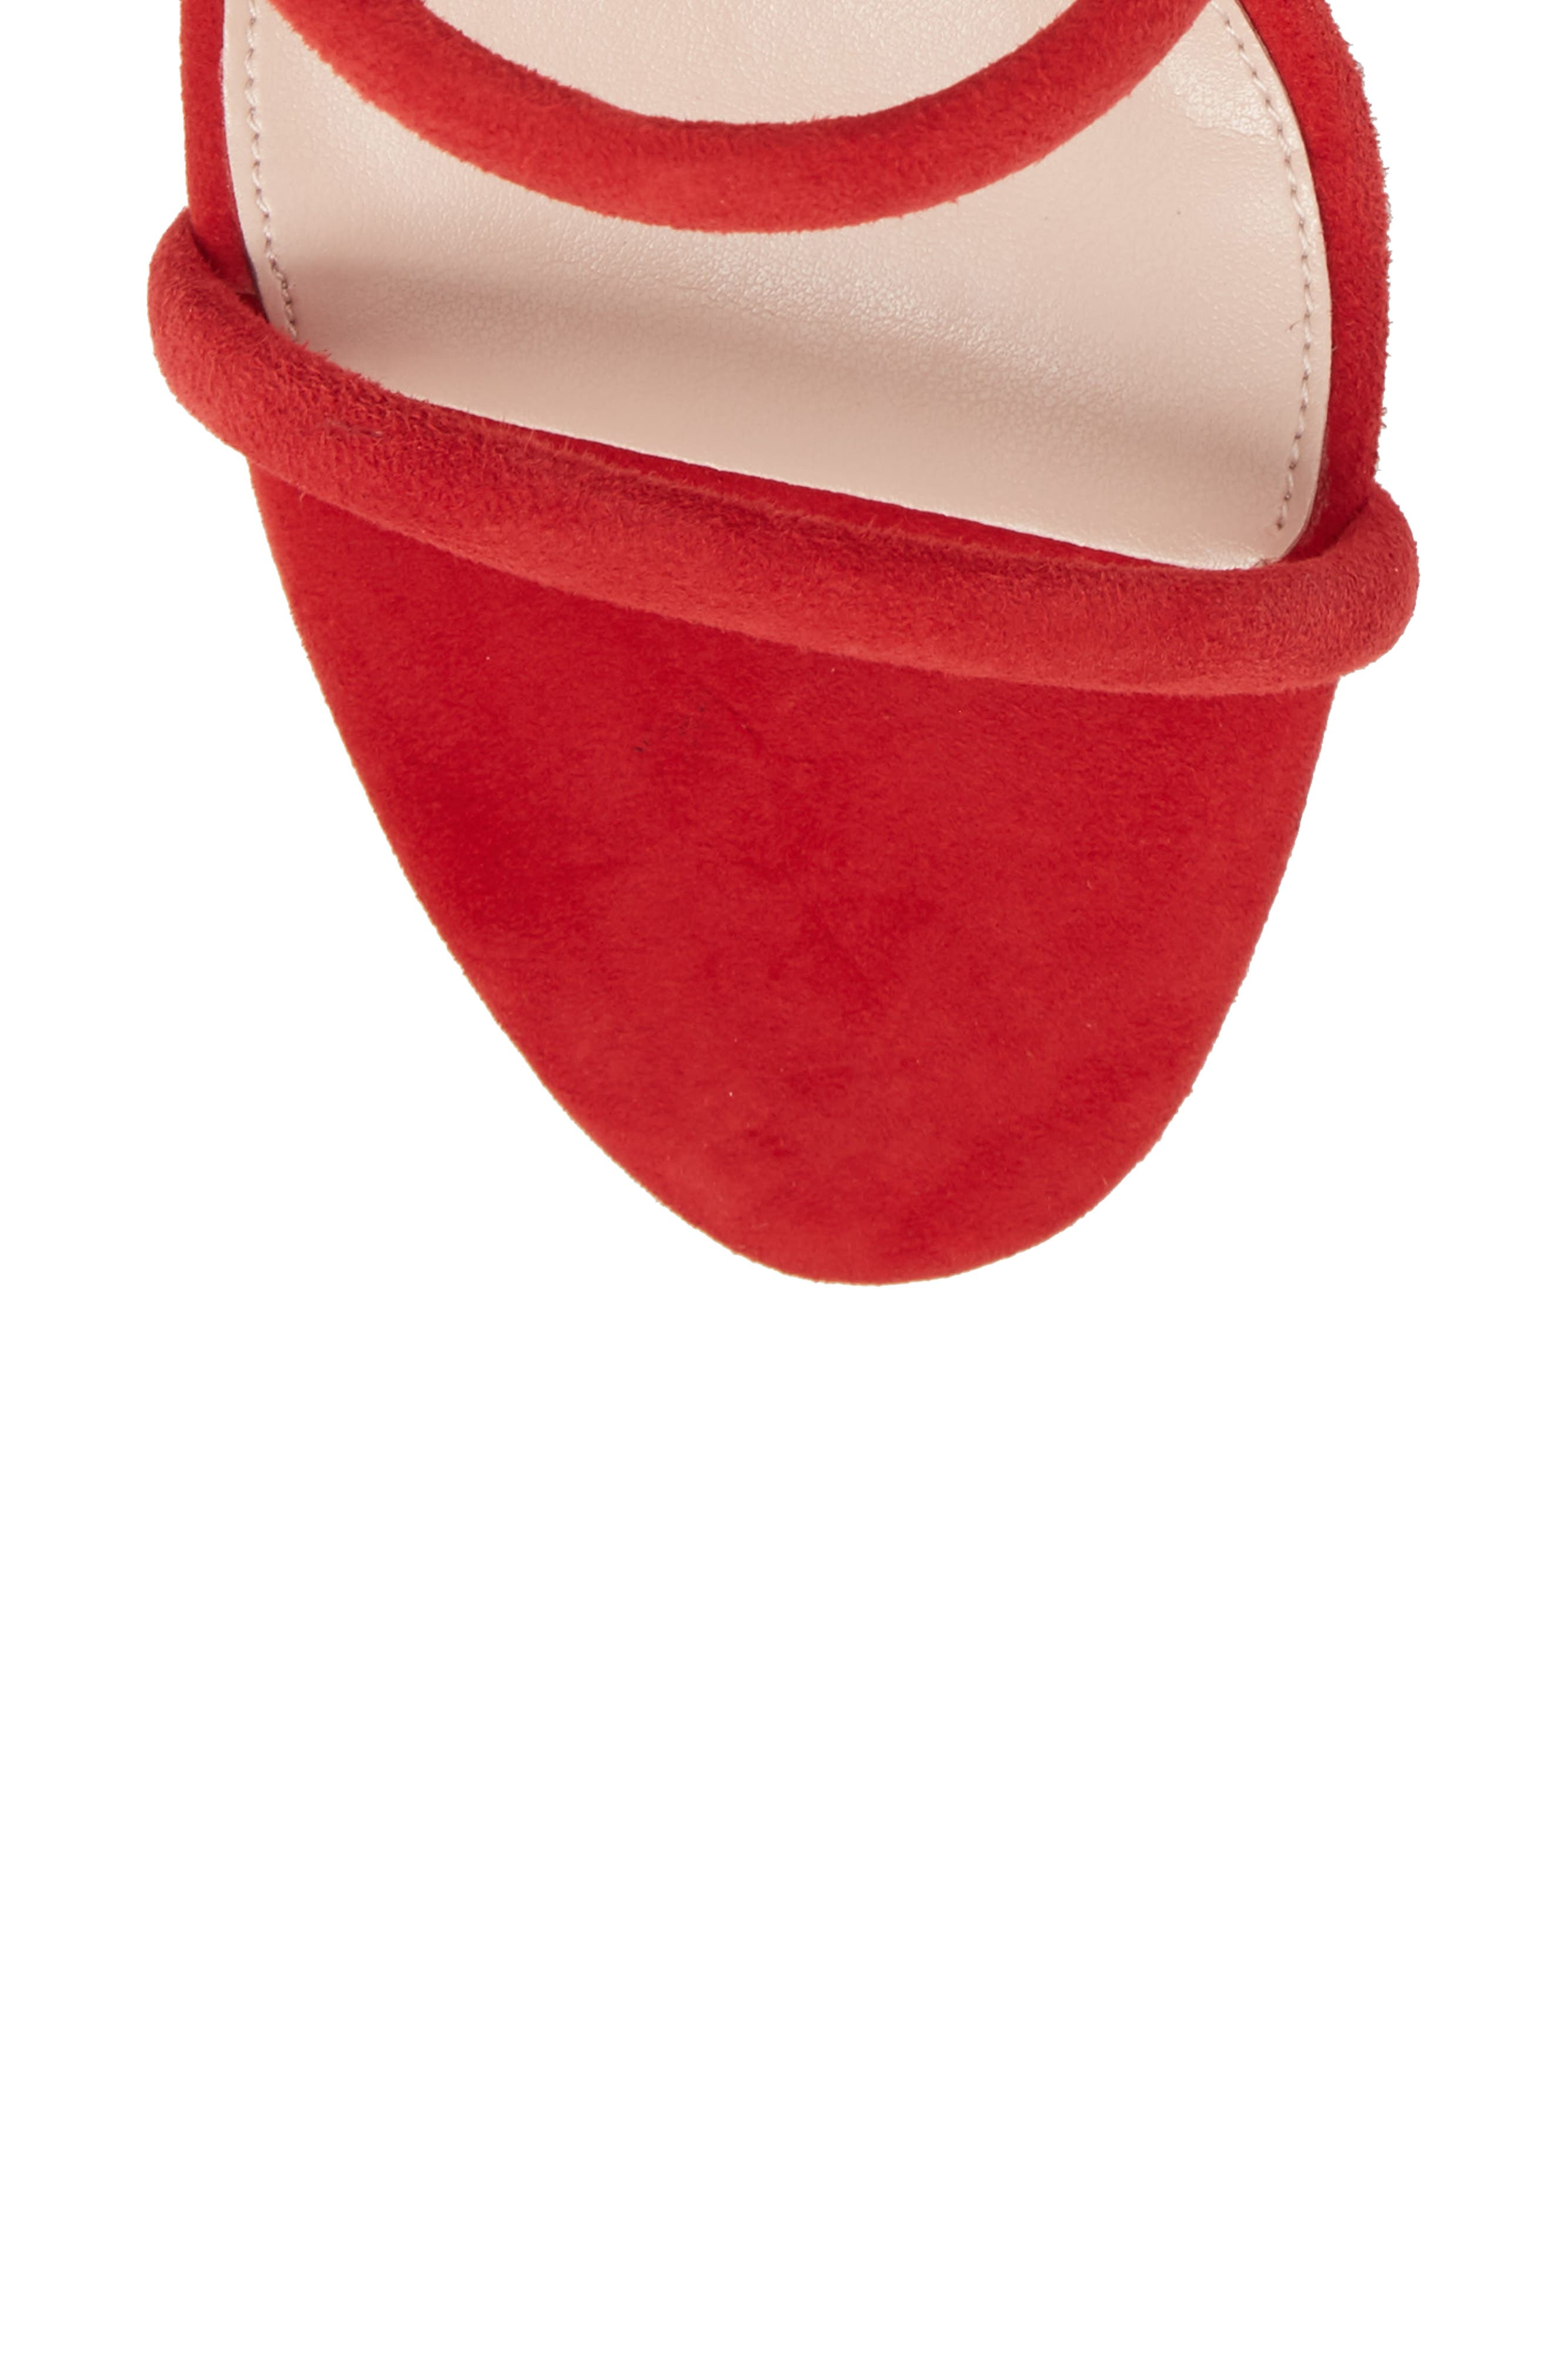 Joia Ankle Wrap Sandal,                             Alternate thumbnail 6, color,                             Rouge Suede